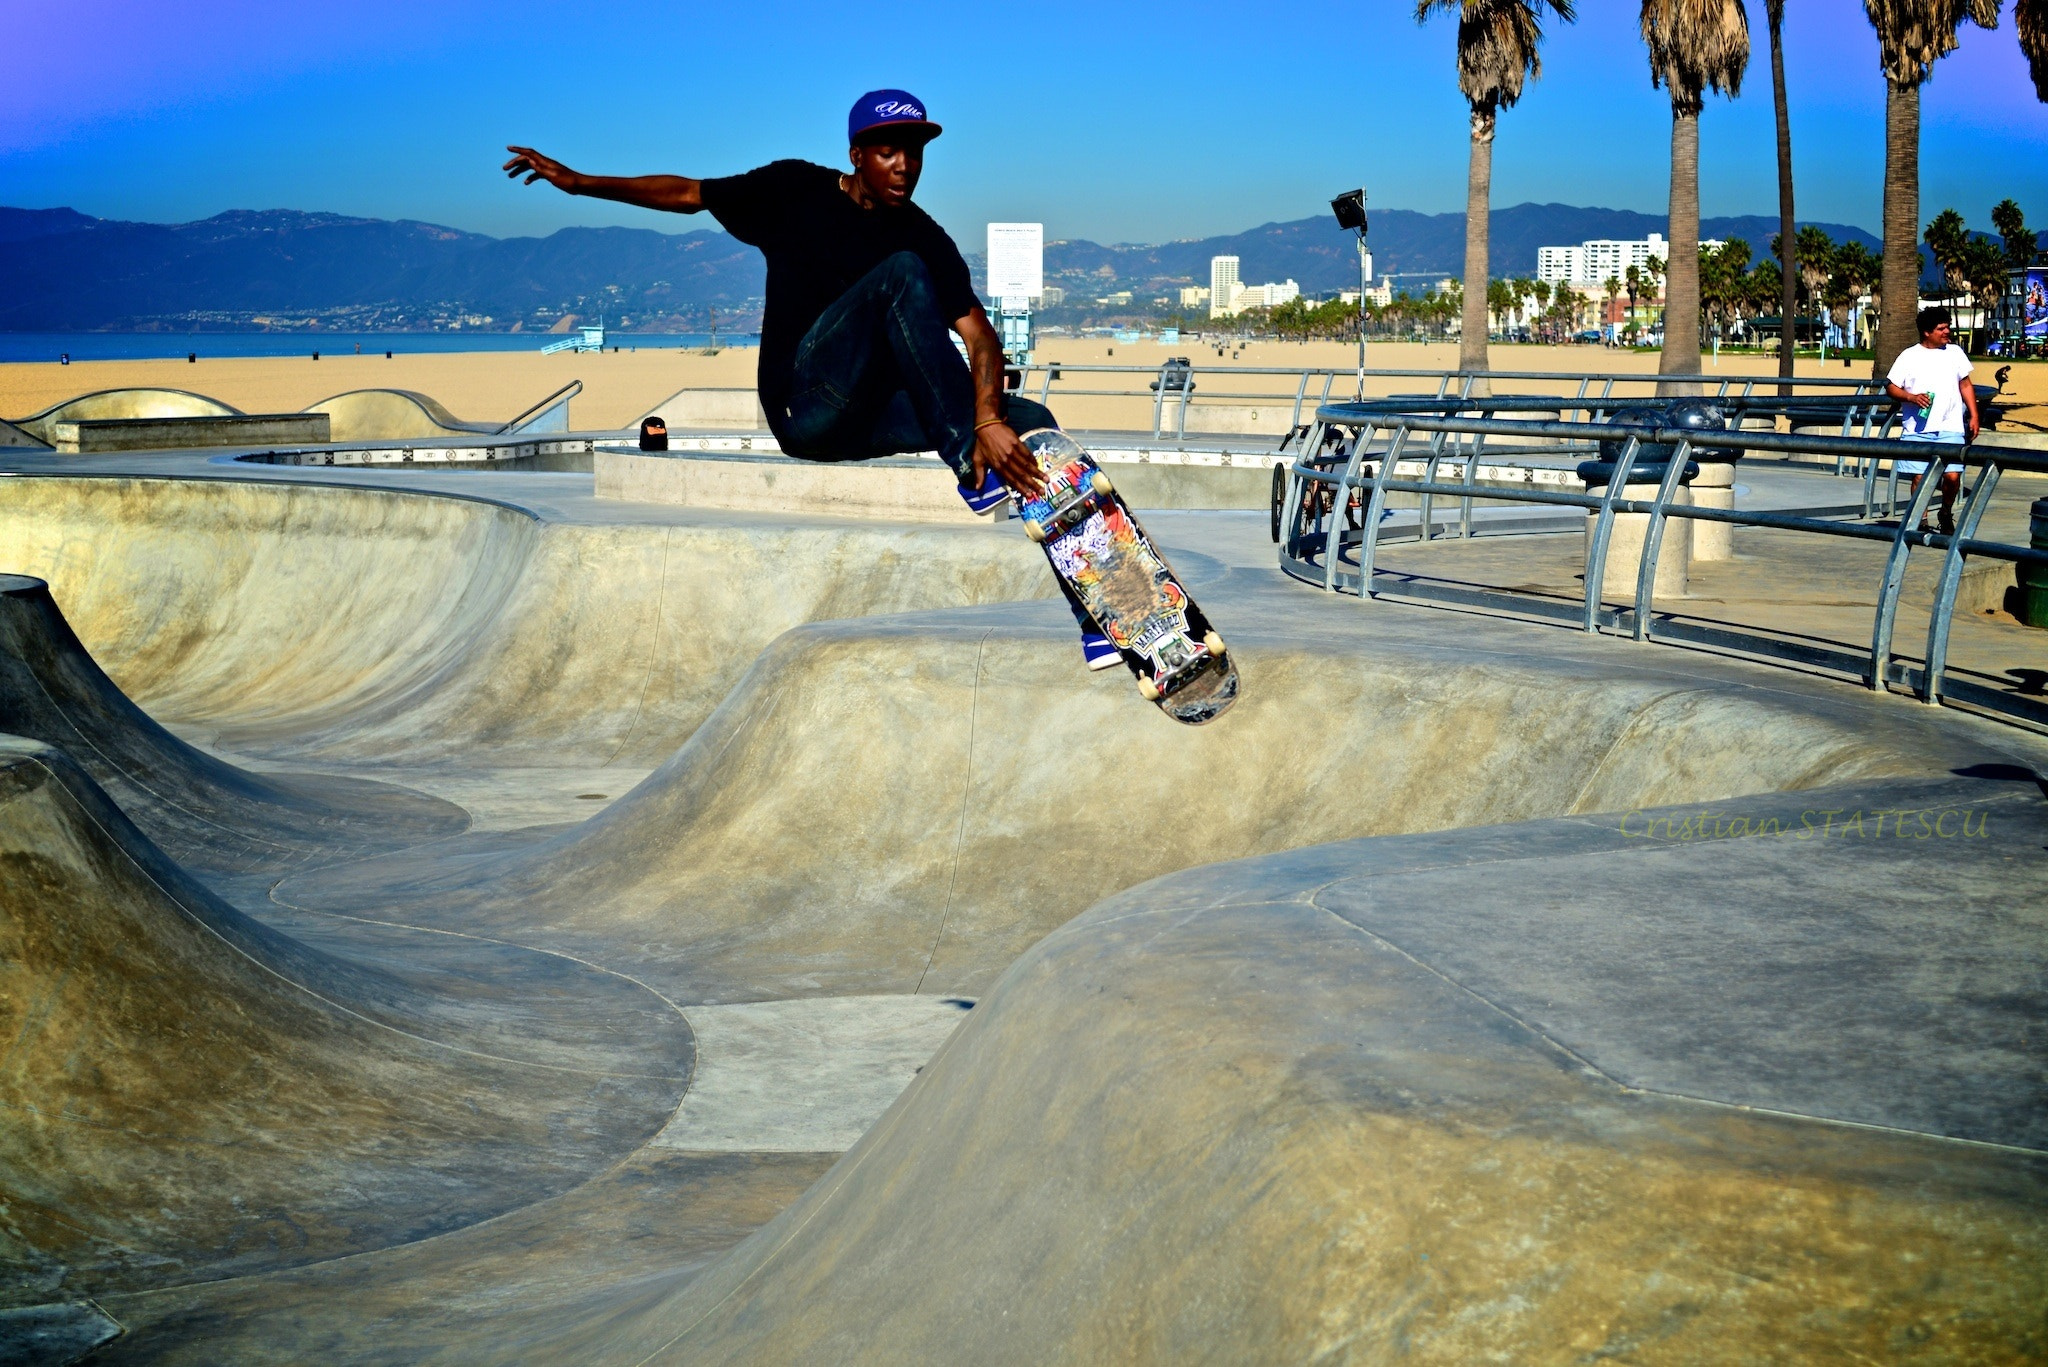 Photograph Action on Venice Beach by Cristian Statescu on 500px